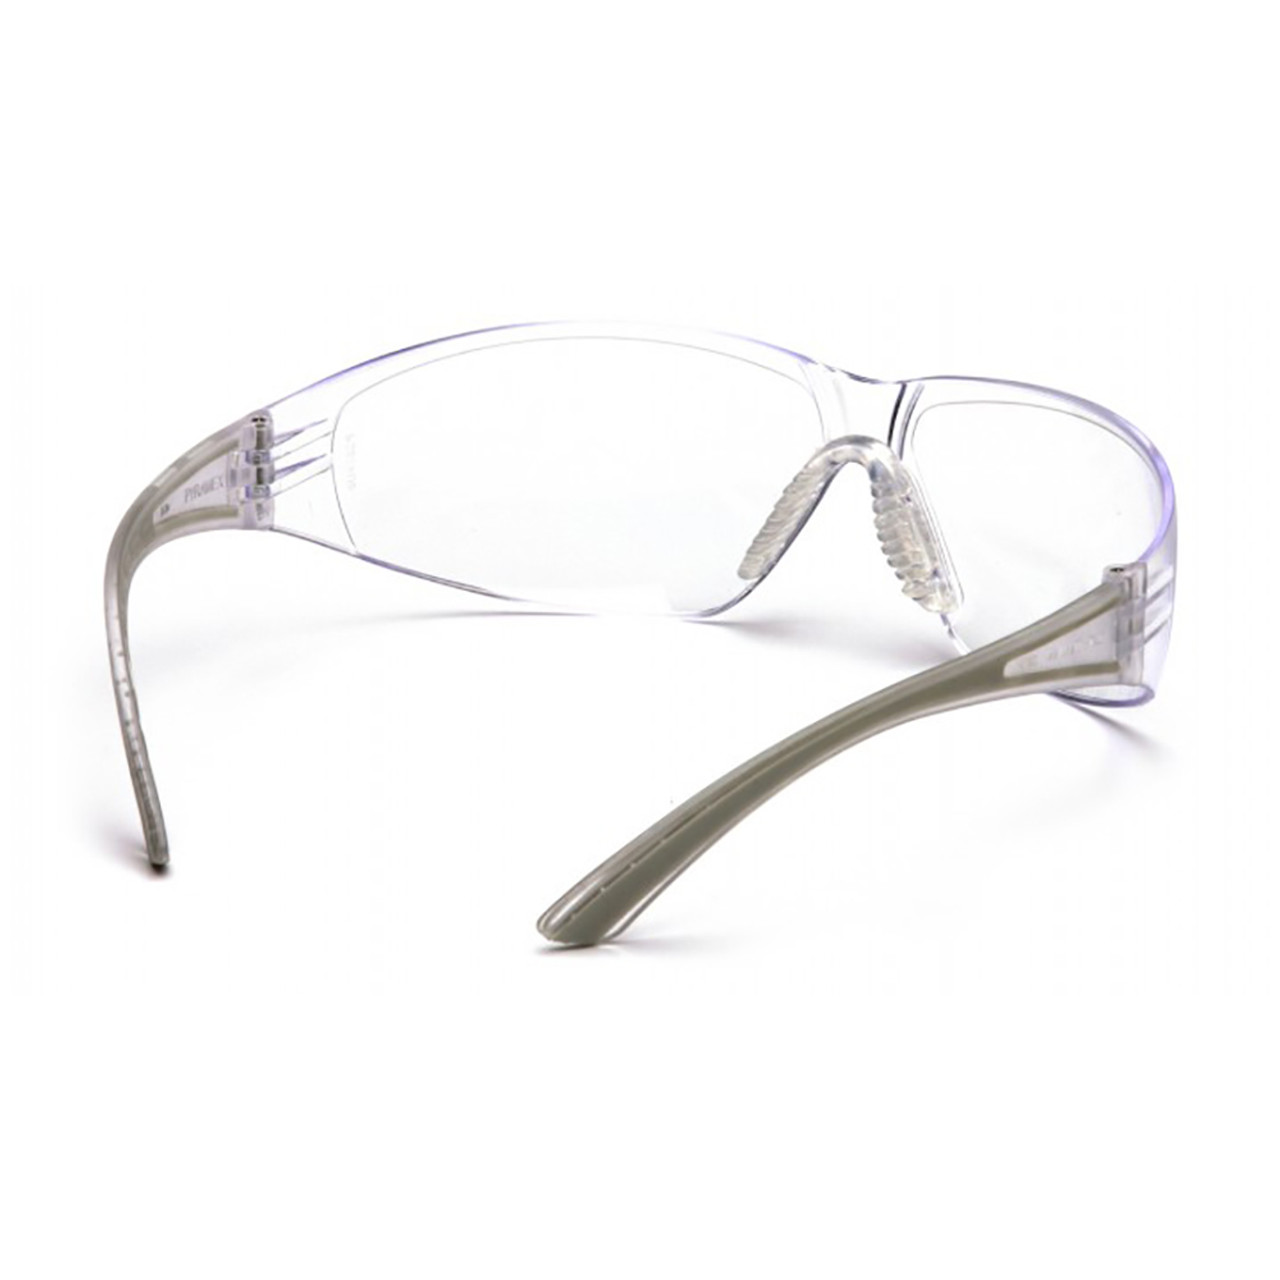 Pyramex Cortez Series Safety Glasses with Clear Lens